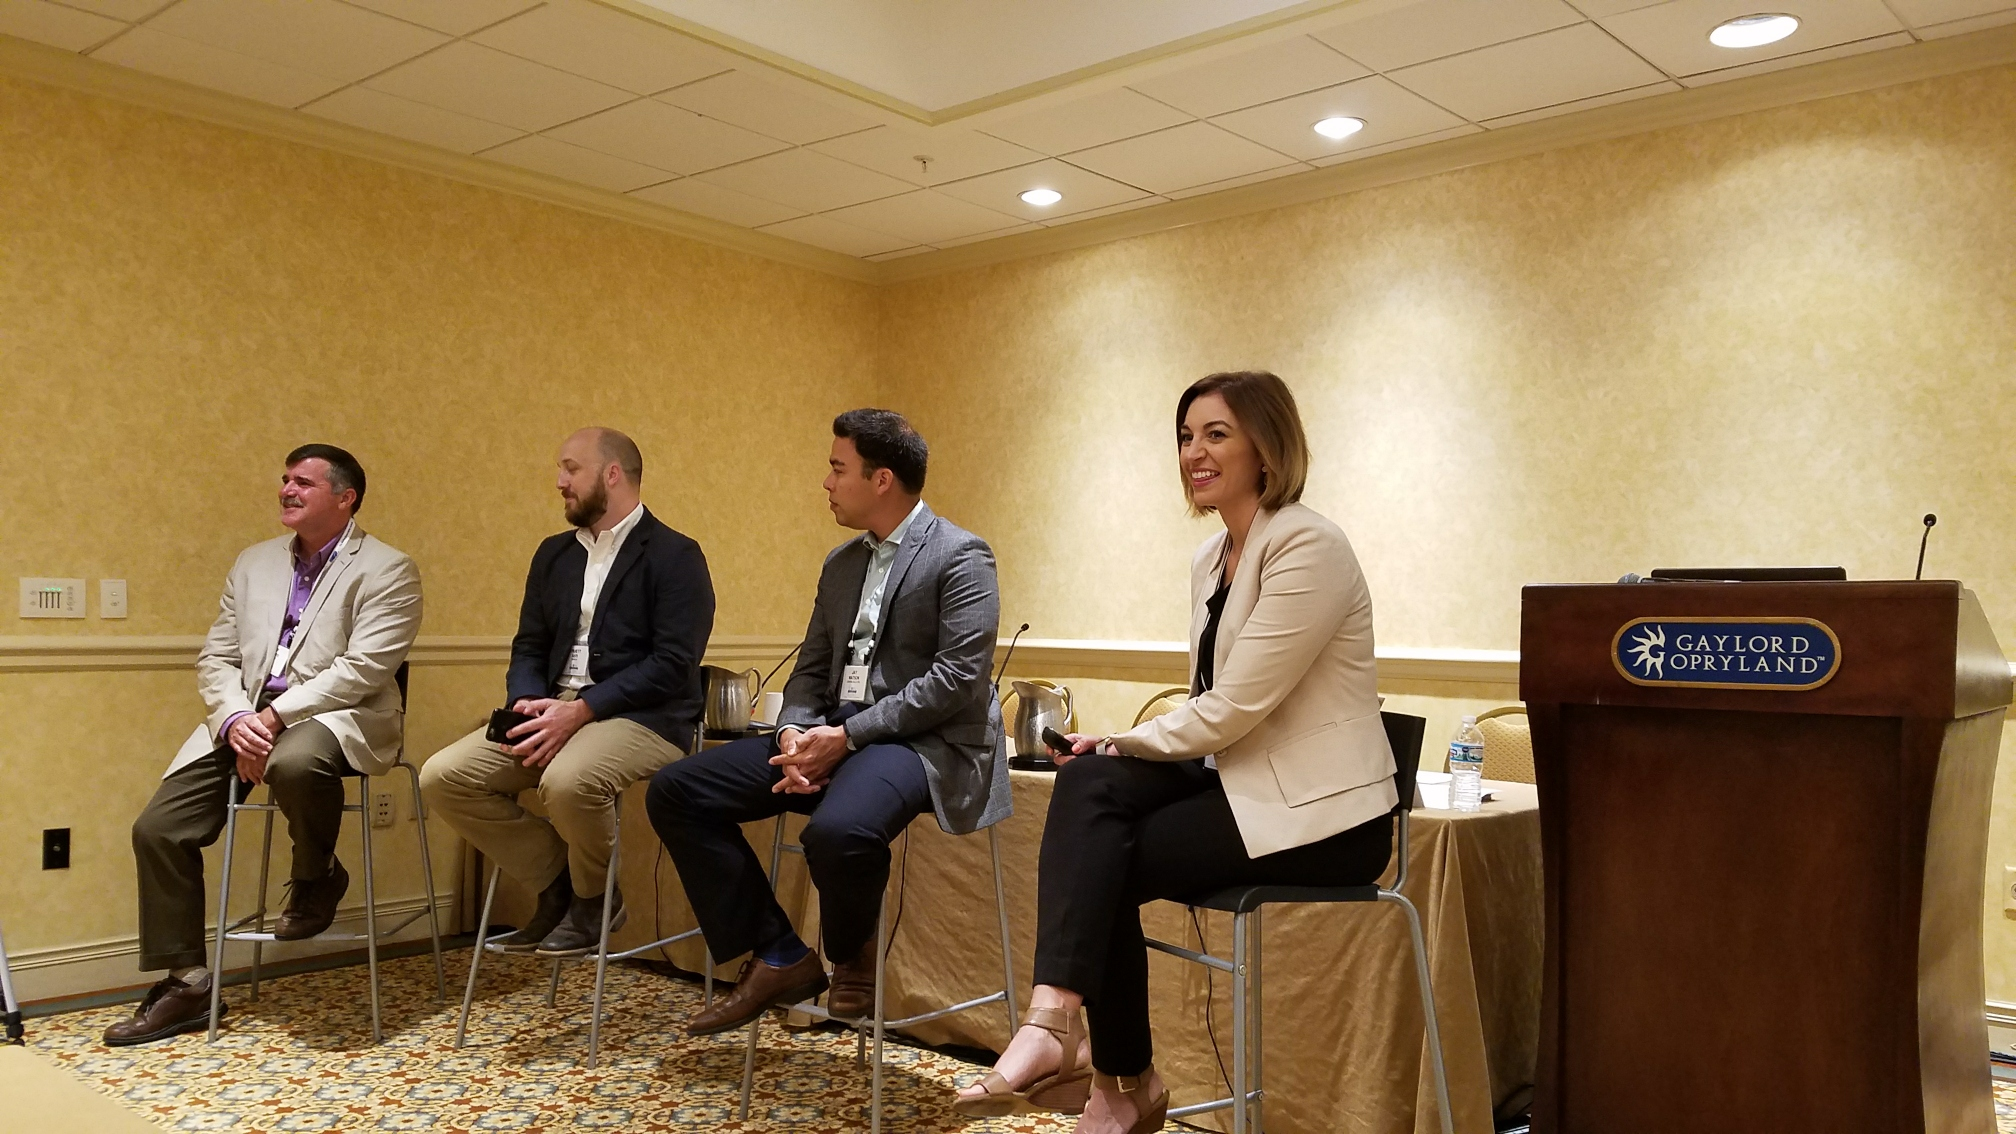 Pictured from left to right: Jeff Peters, Agrible; Truett Asti, Barilla; Jay Watson, General Mills; Cynthia Bruno, Agrible.